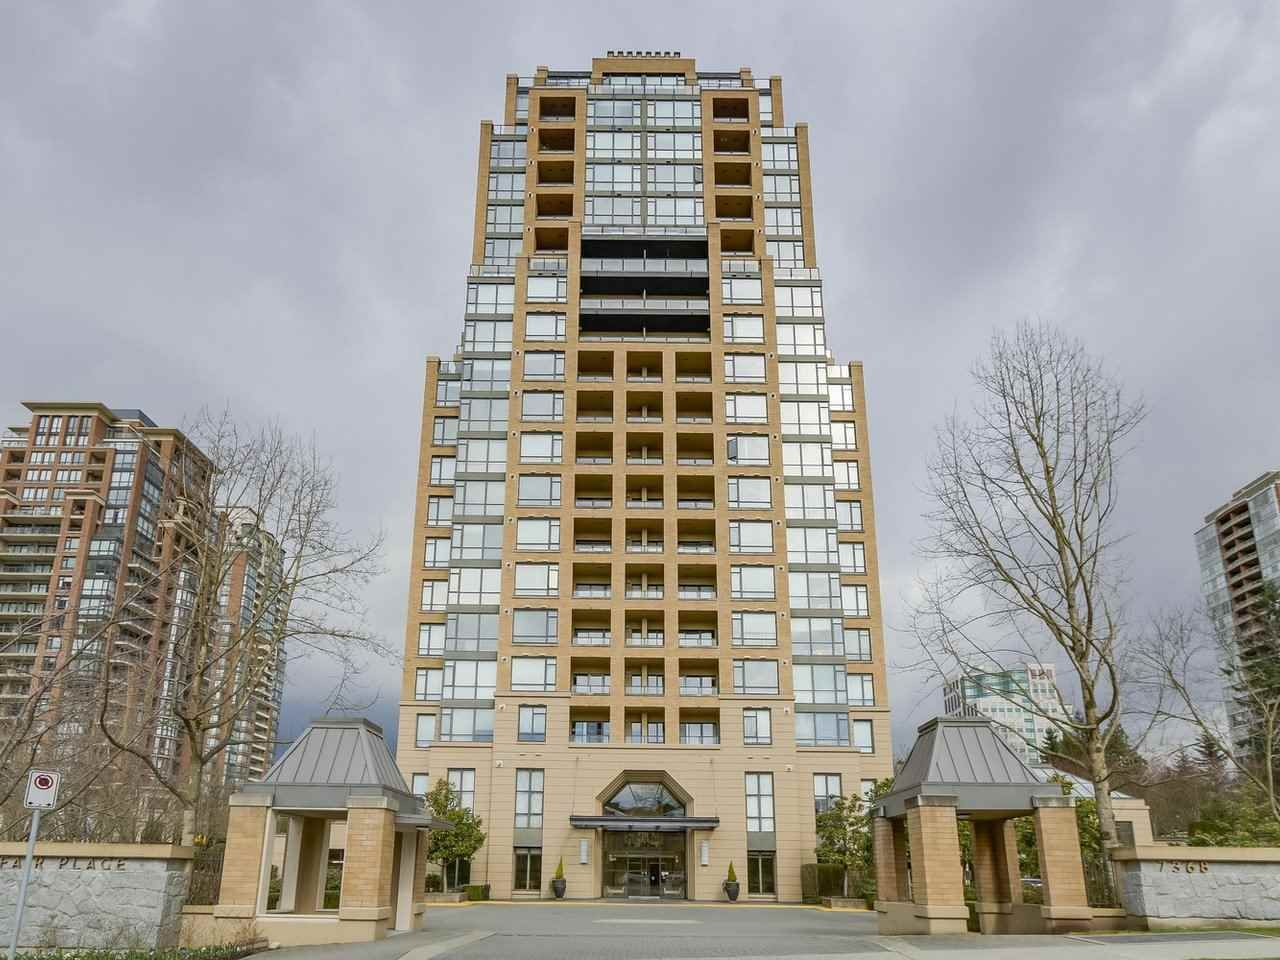 """Main Photo: 408 7368 SANDBORNE Avenue in Burnaby: South Slope Condo for sale in """"MAYFAIR 1"""" (Burnaby South)  : MLS®# R2380990"""